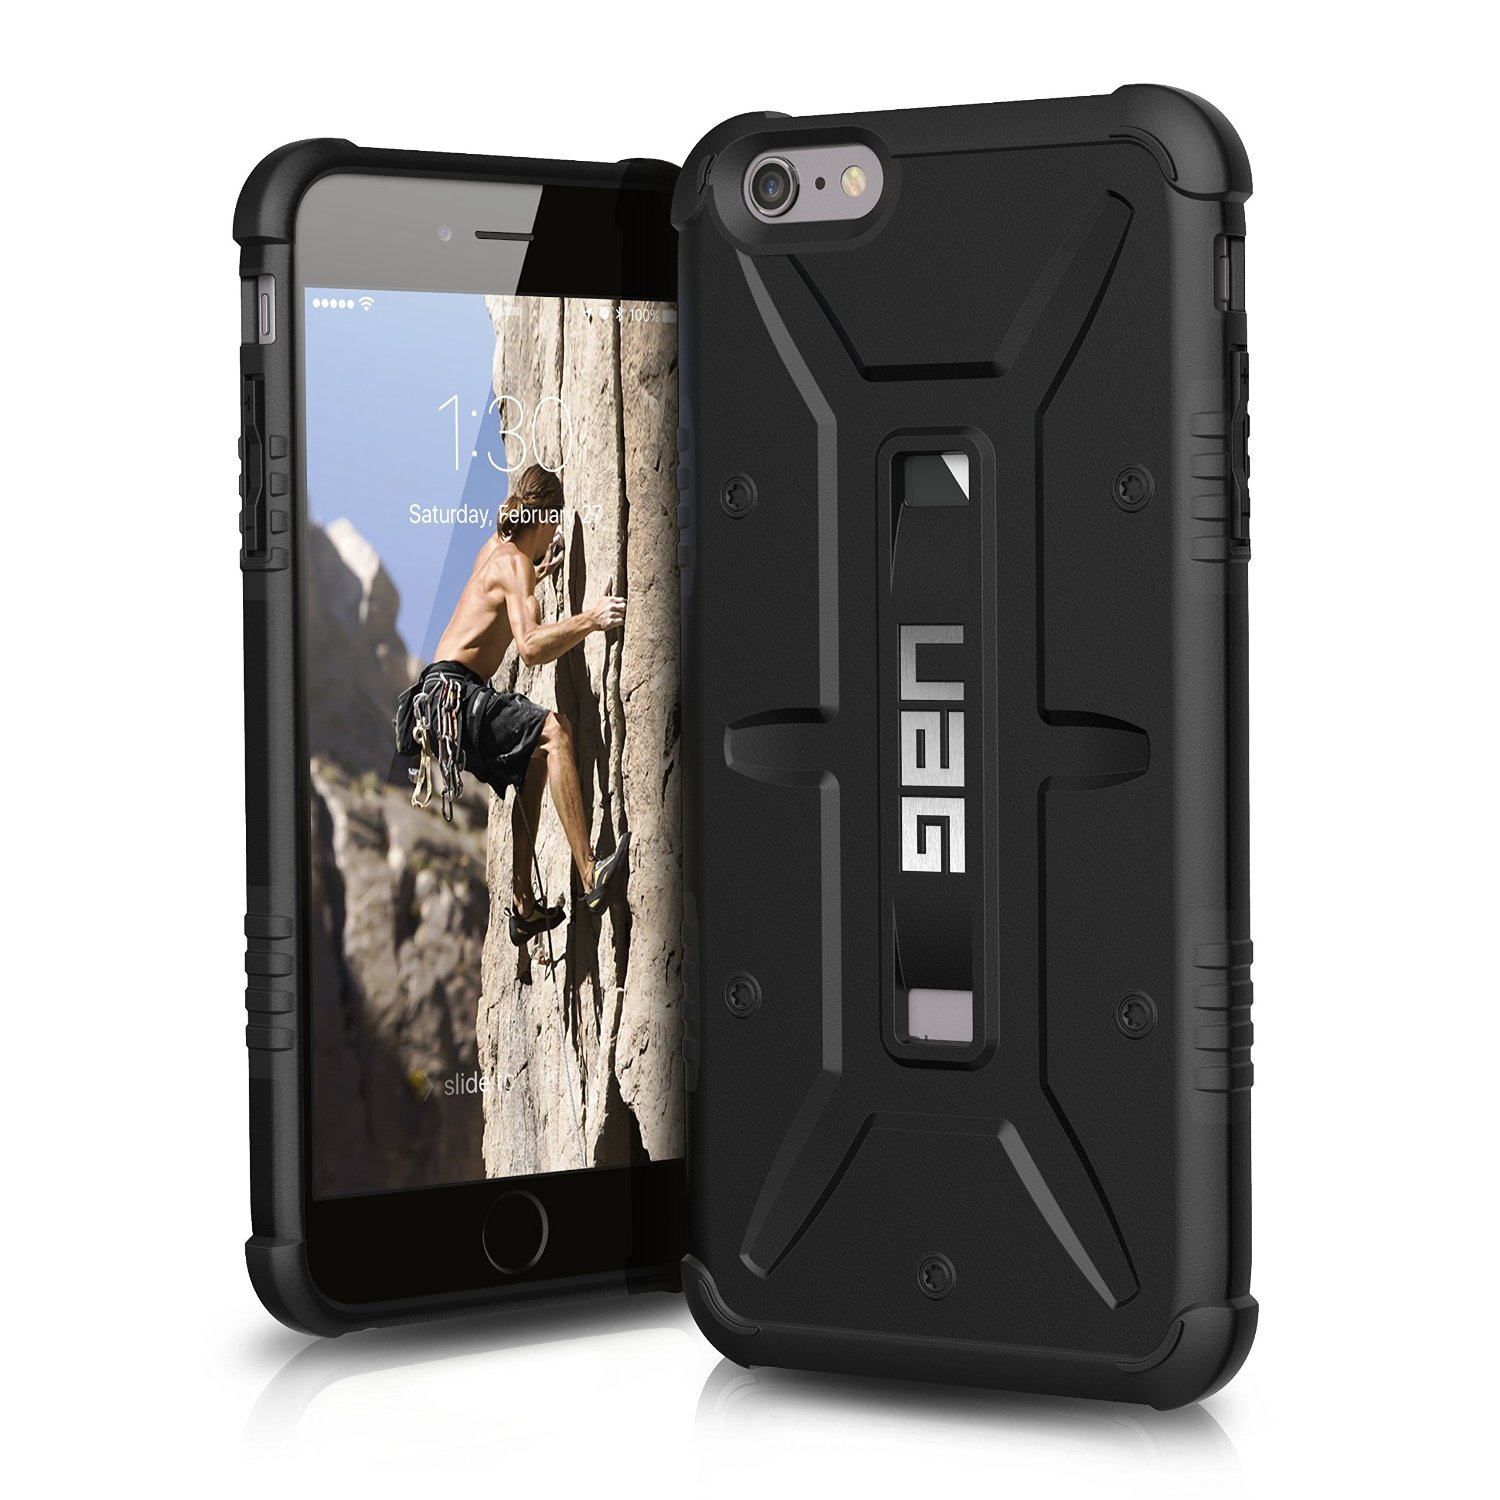 UAG Θήκη Feather-Light Composite iPhone 6 Plus/6S Plus - Black (7943)